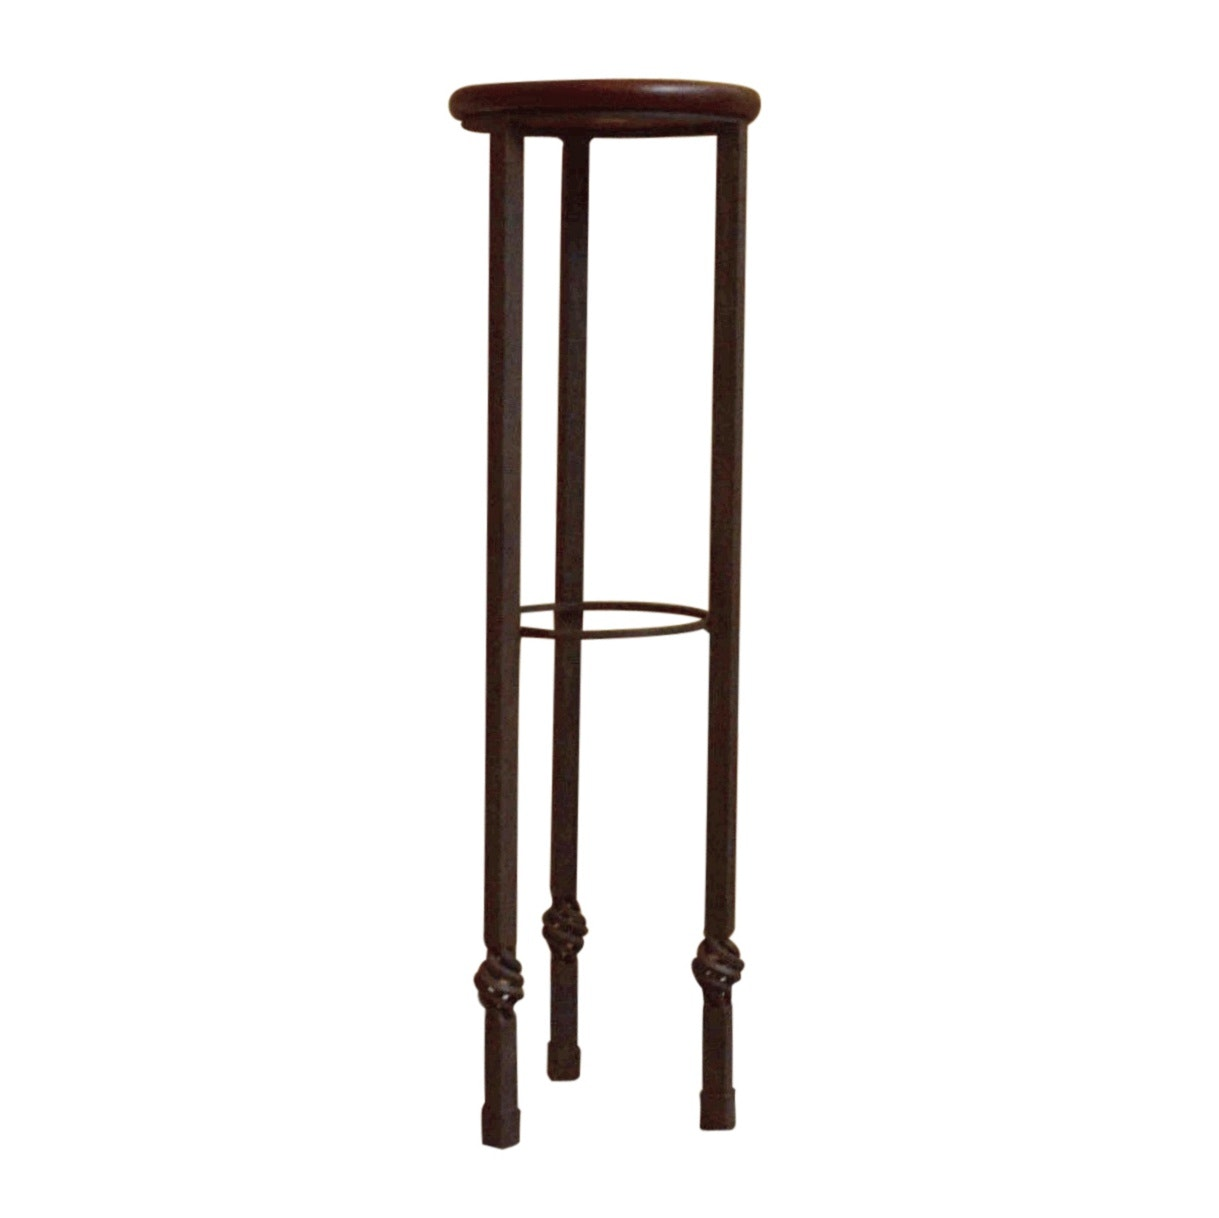 Contemporary Wrought Iron Pedestal Stand